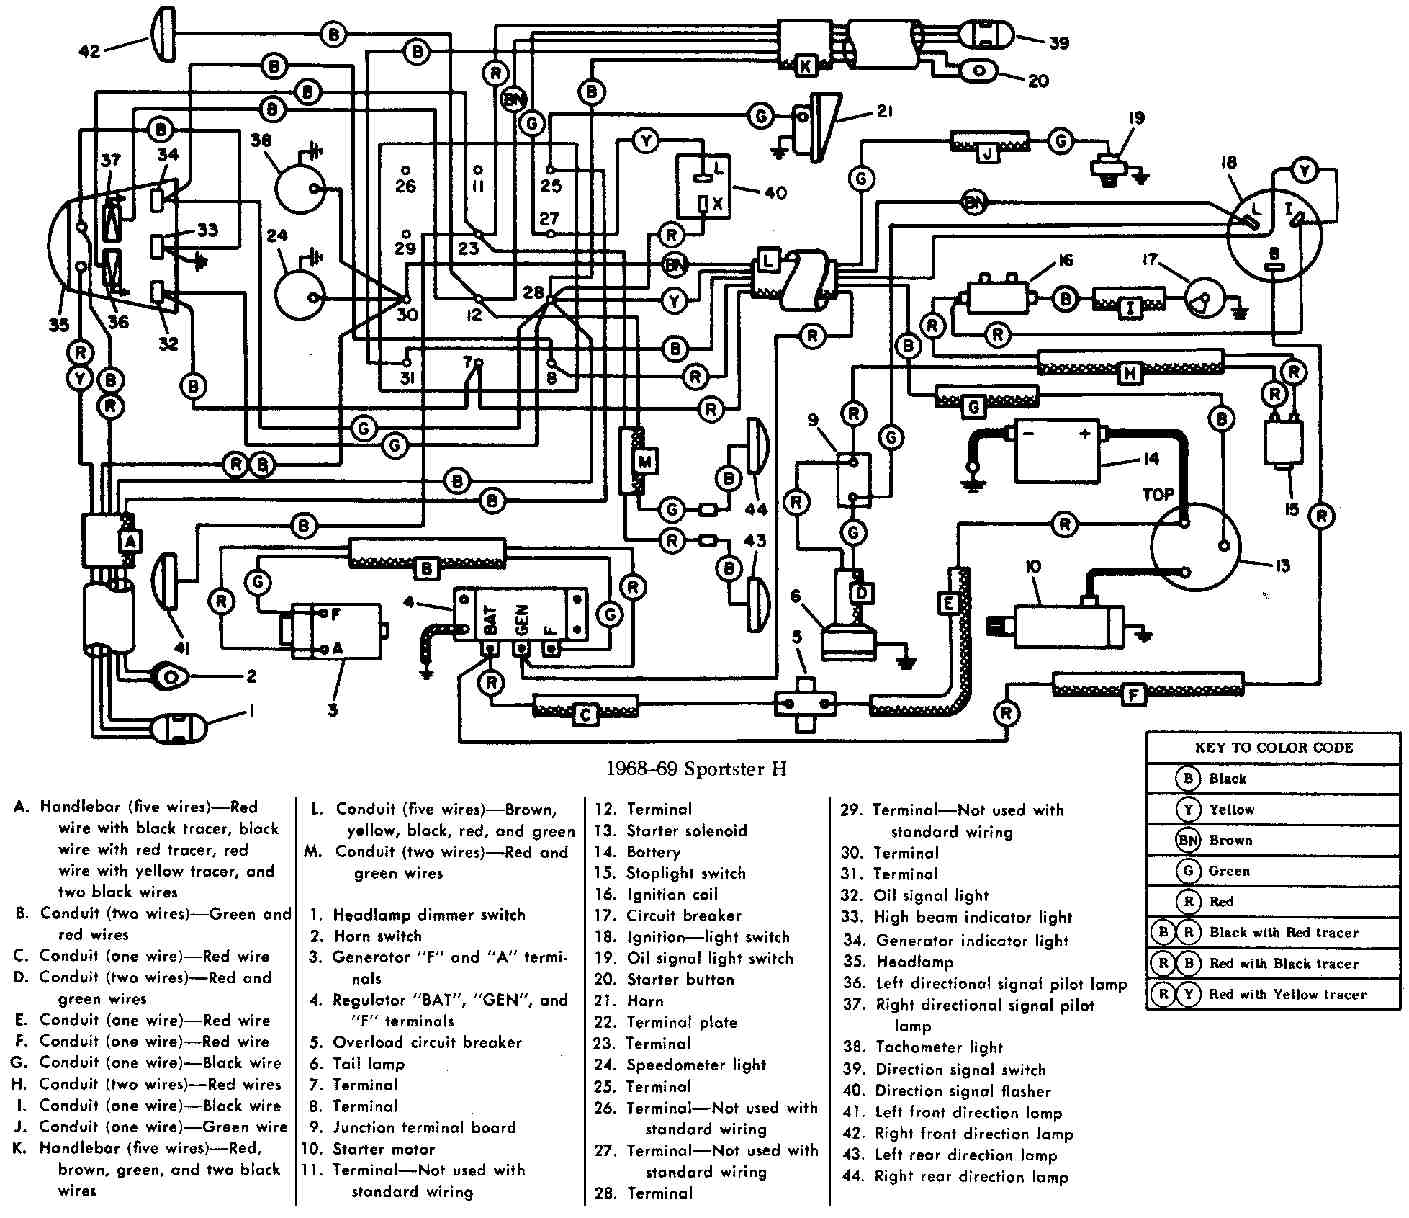 Harley Softail Wiring Diagram - 7.cotsamzp.timmarshall.info • on softail dash panel, softail air cleaner, softail exhaust, softail suspension, softail wheels, softail gas tank, softail windshield, softail fender,